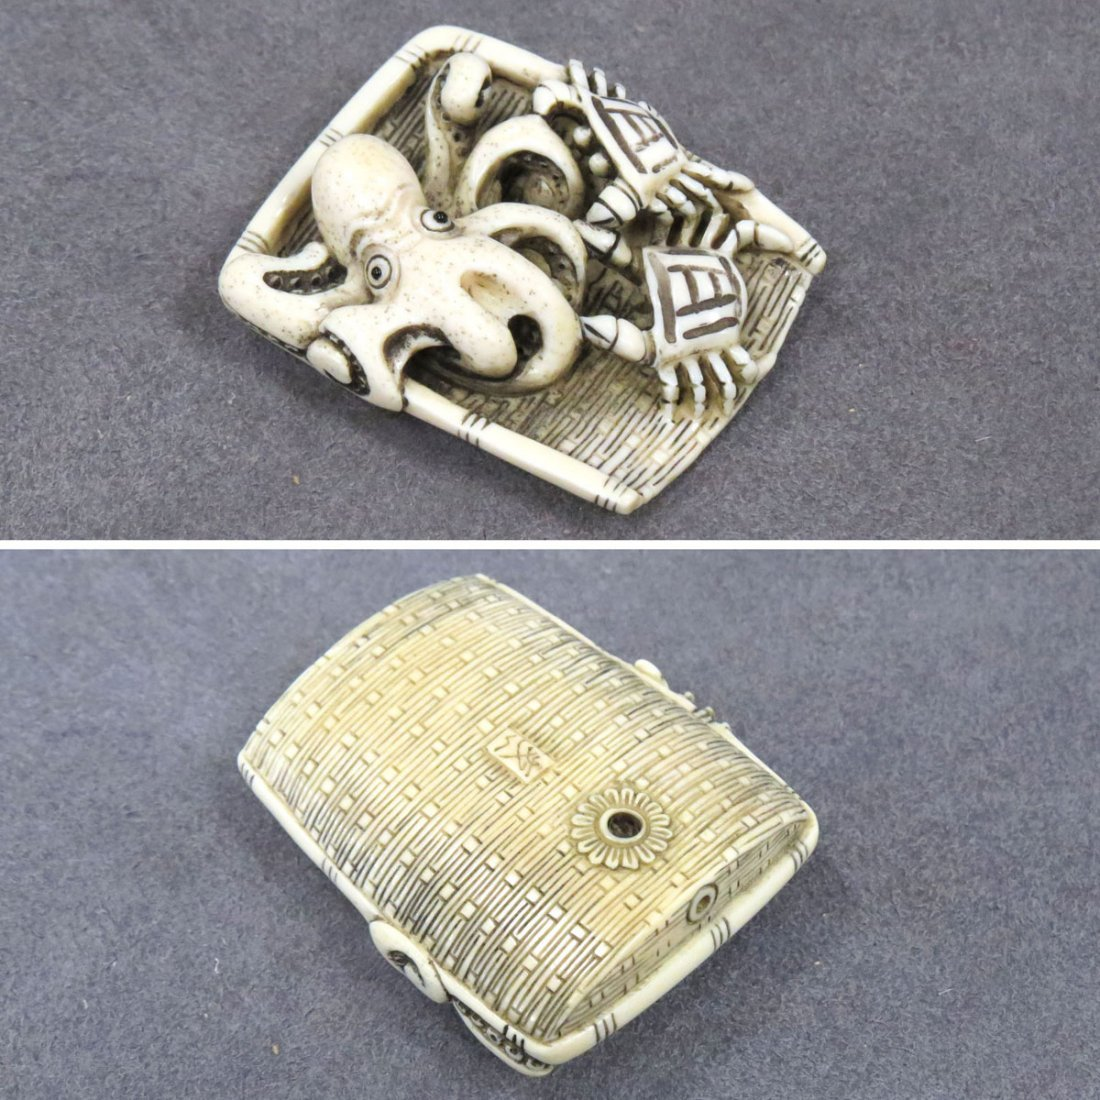 JAPANESE CARVED IVORY NETSUKE, OCTOPUS AND CRABS